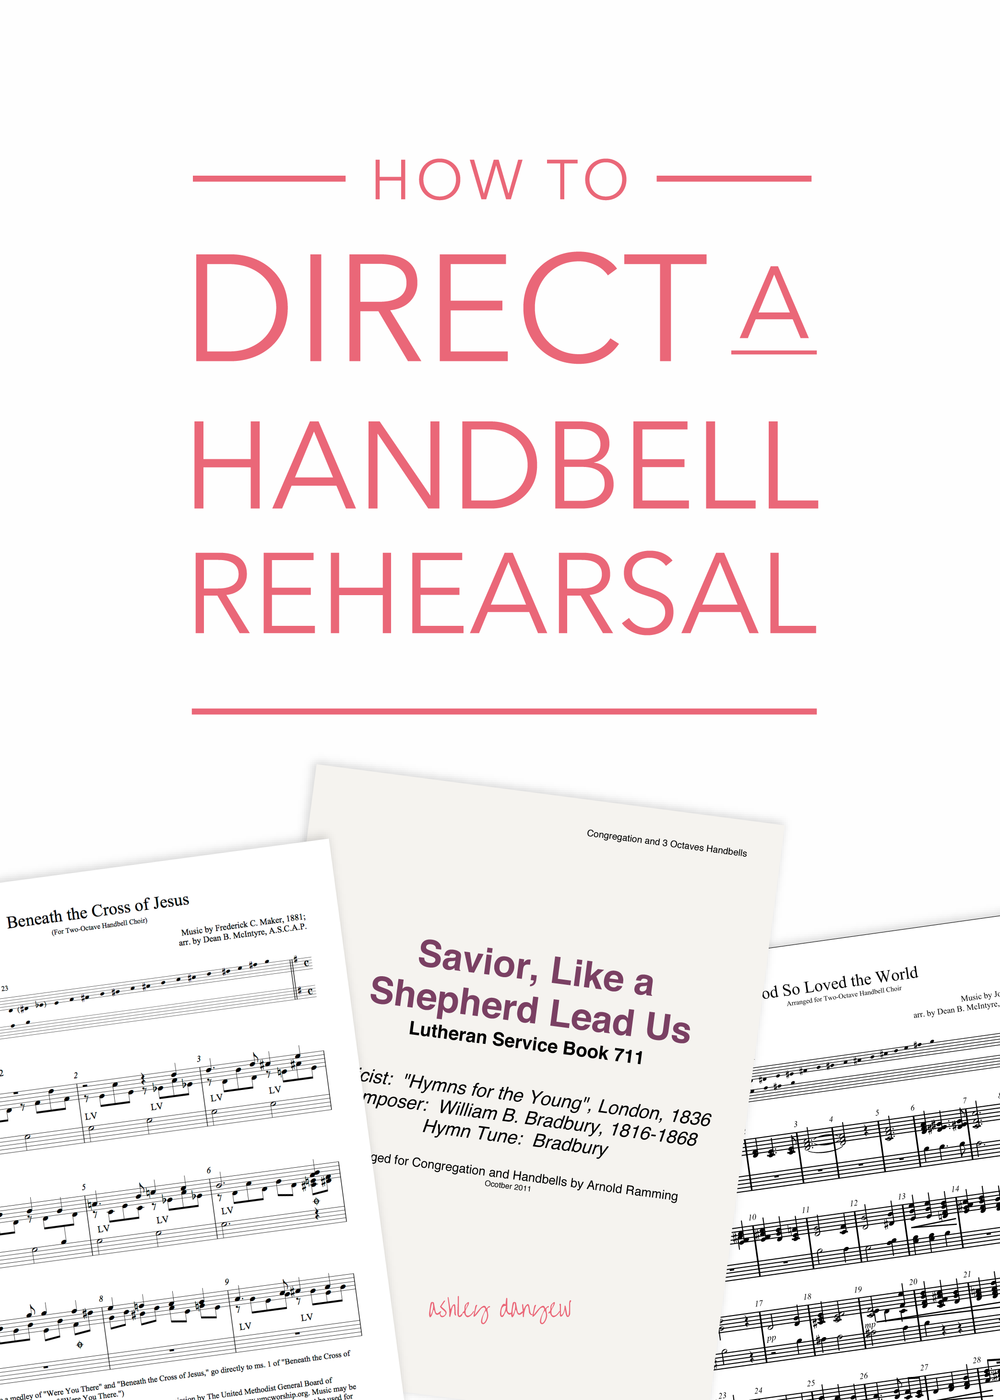 How to Direct a Handbell Rehearsal-04.png